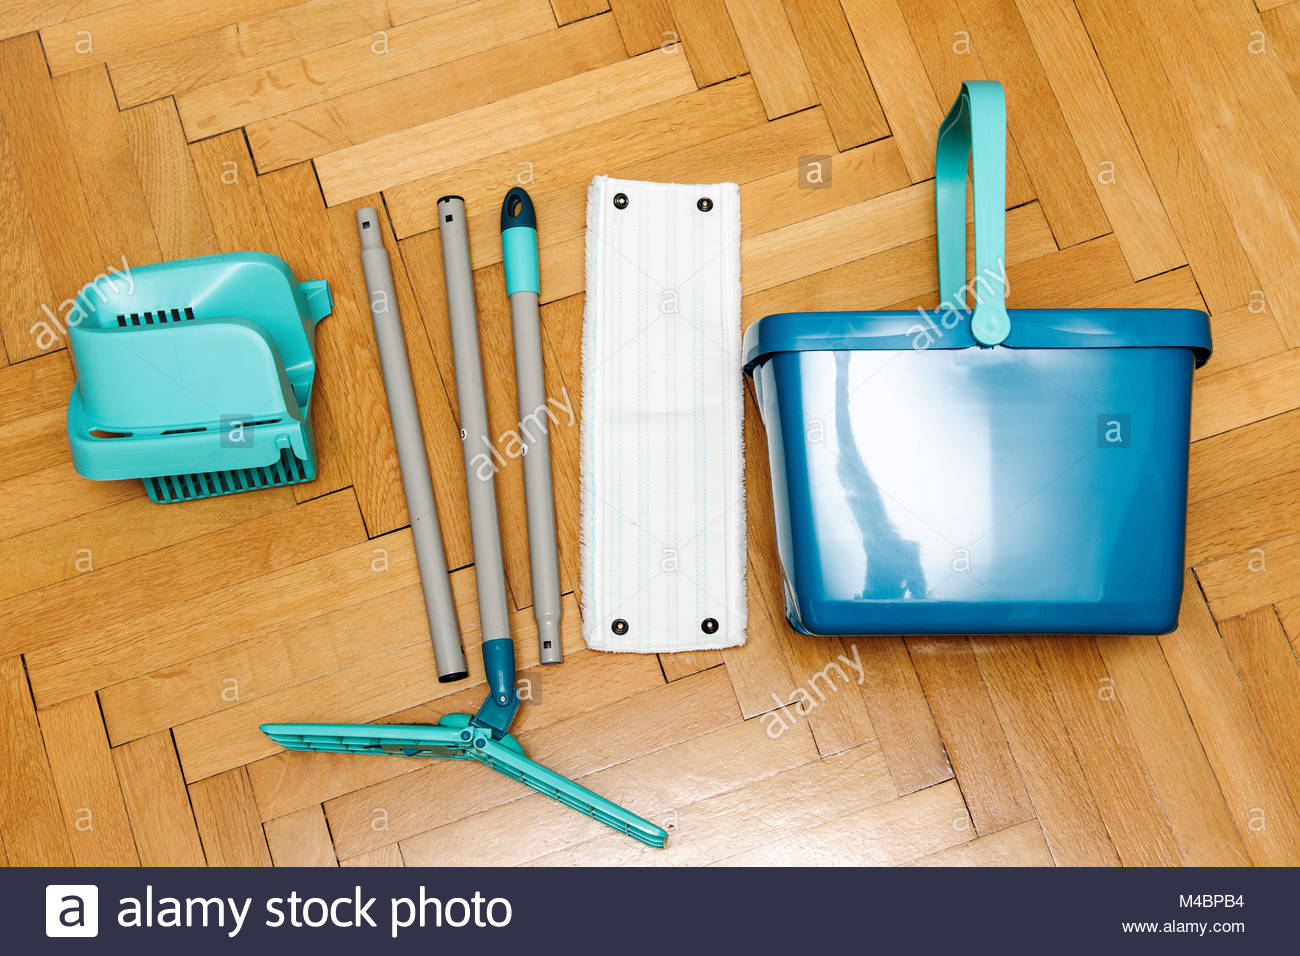 Complete set of mop with bucket as seen from above Stock Photo